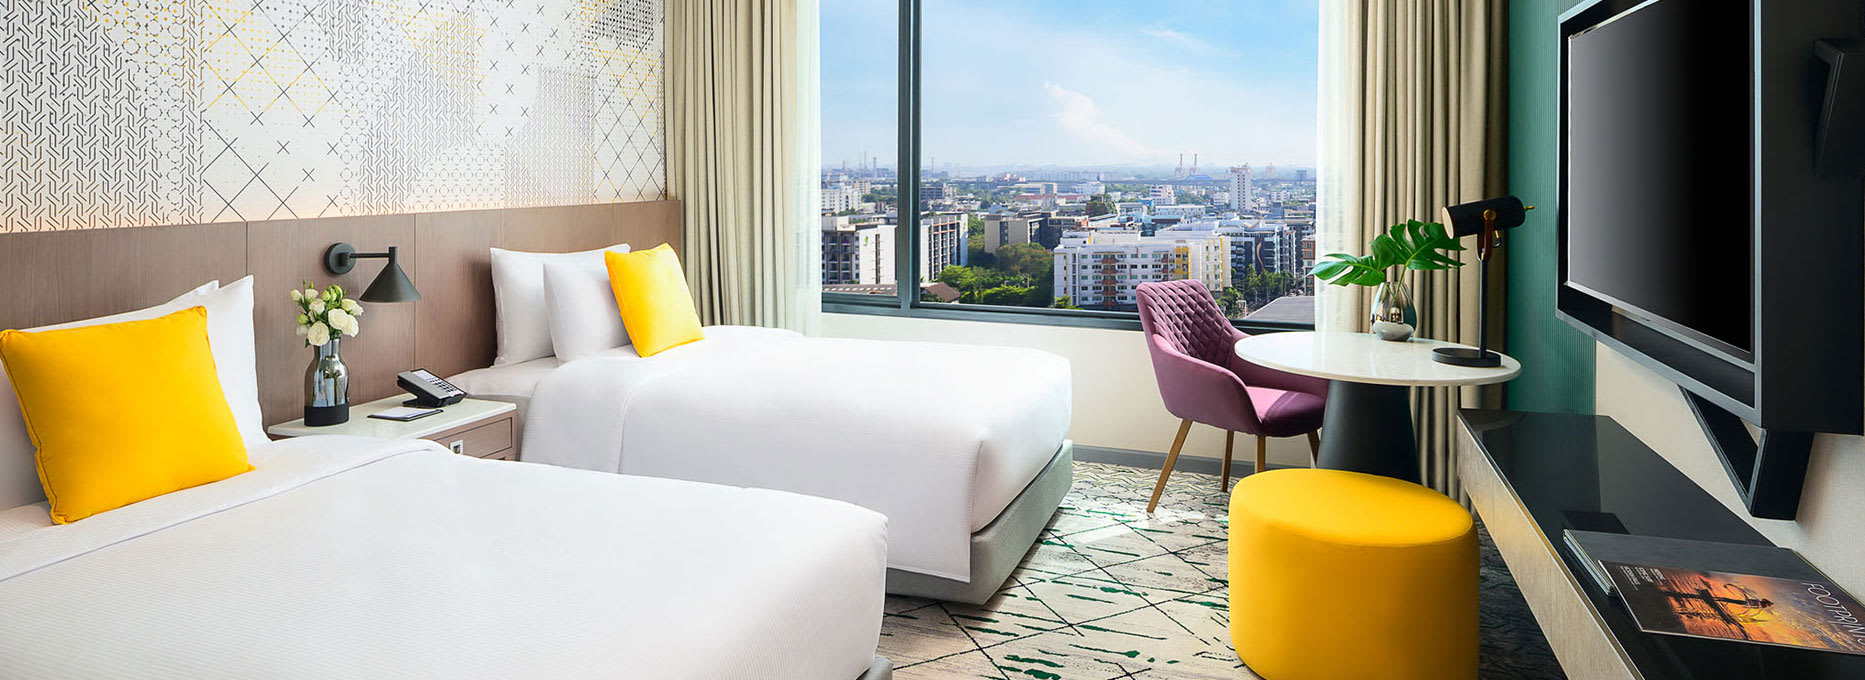 Avani Skyline Room - Twin